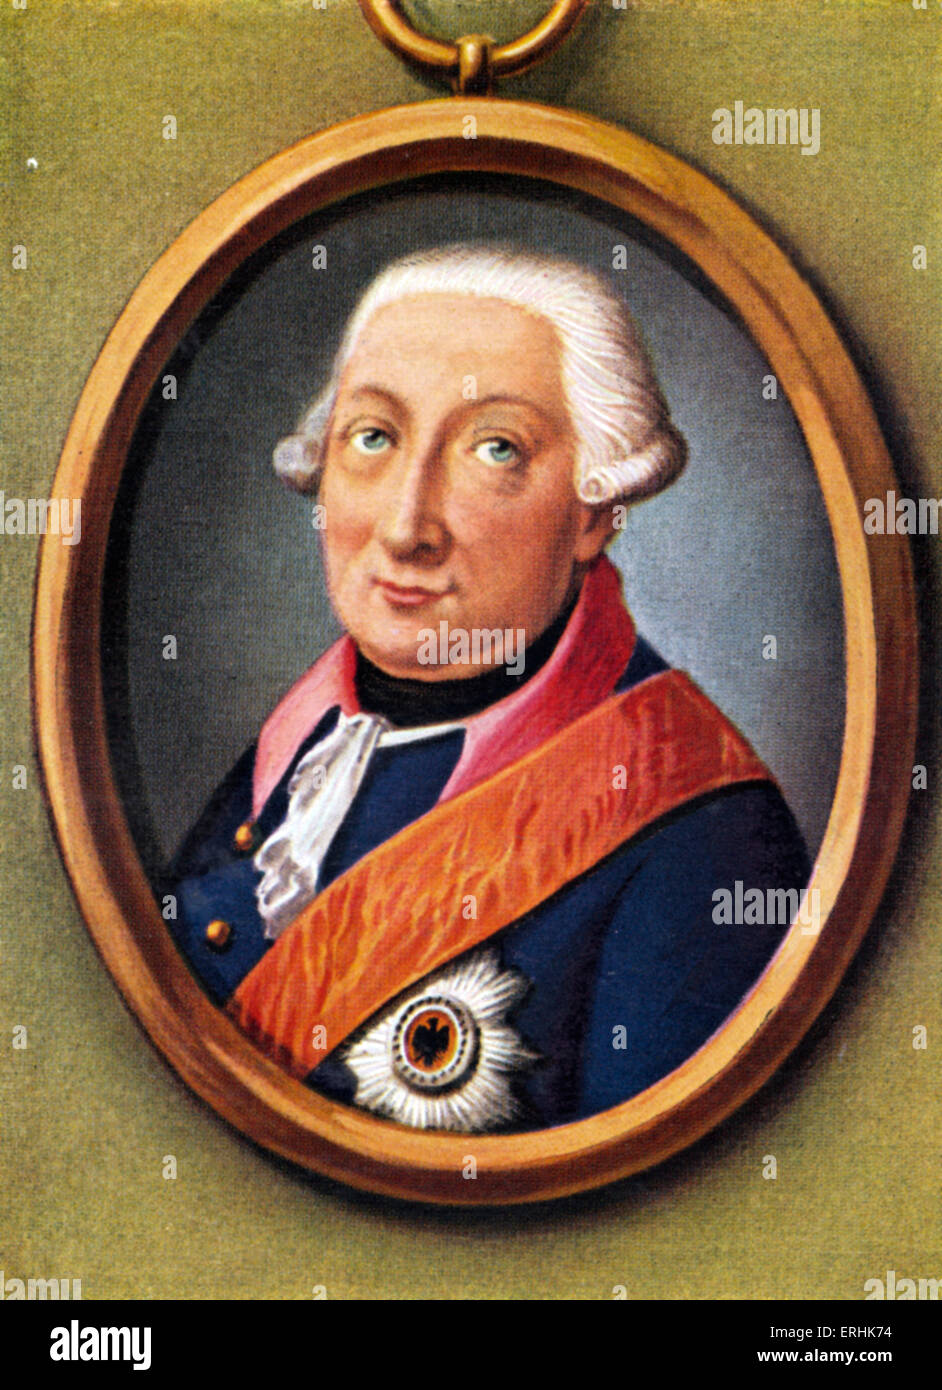 Bogislav Friedrich Emanuel count Tauentzien von Wittenberg. Portrait of the Prussian general. 15 September 1760 - Stock Image